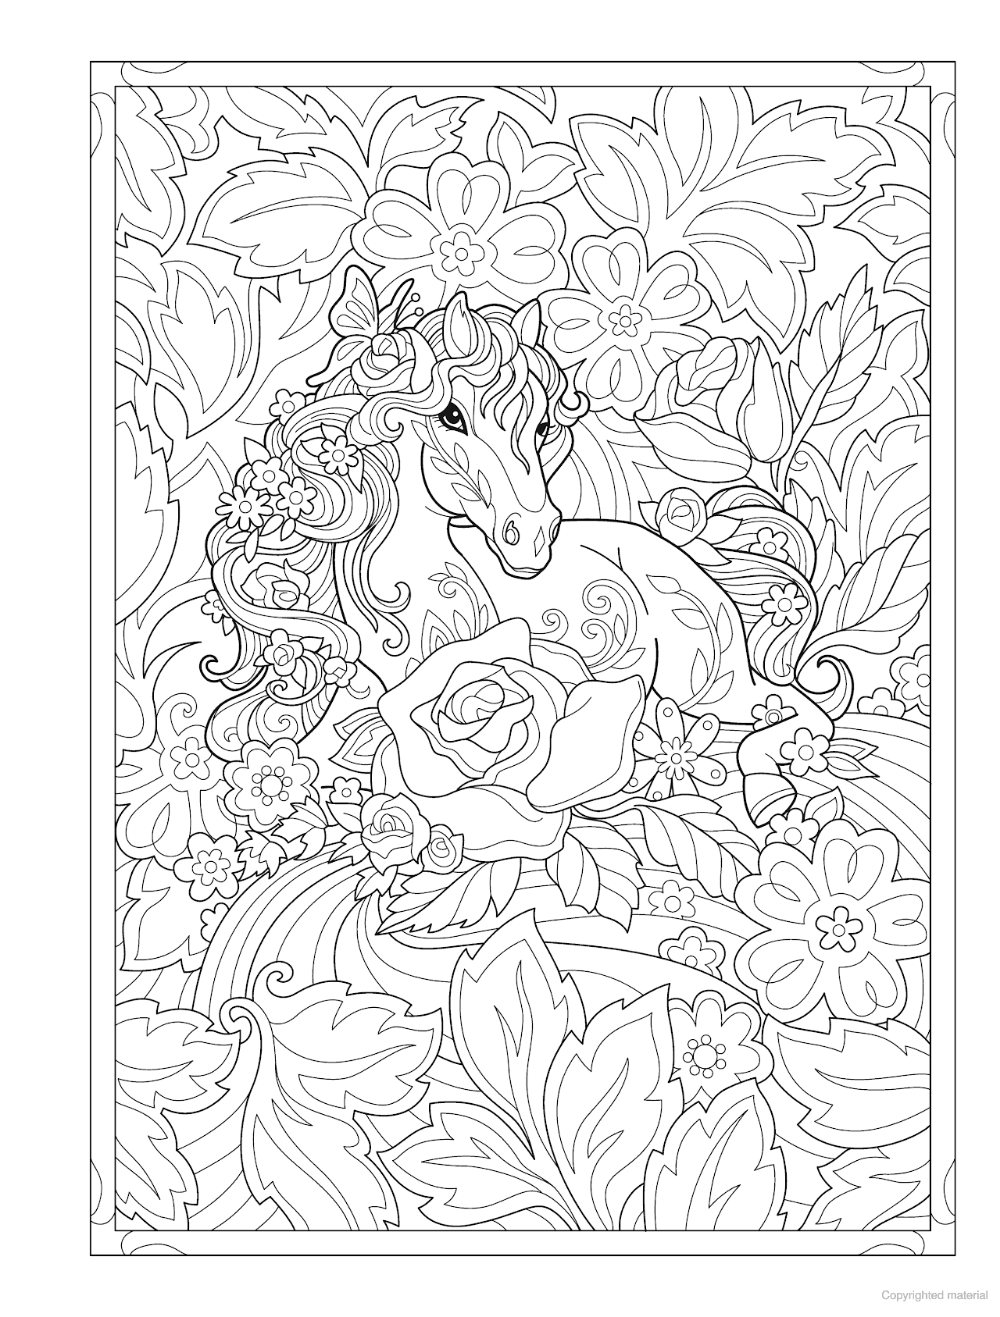 Creative Haven Dream Horses Coloring Book In 2020 Horse Coloring Books Coloring Books Horse Coloring Pages